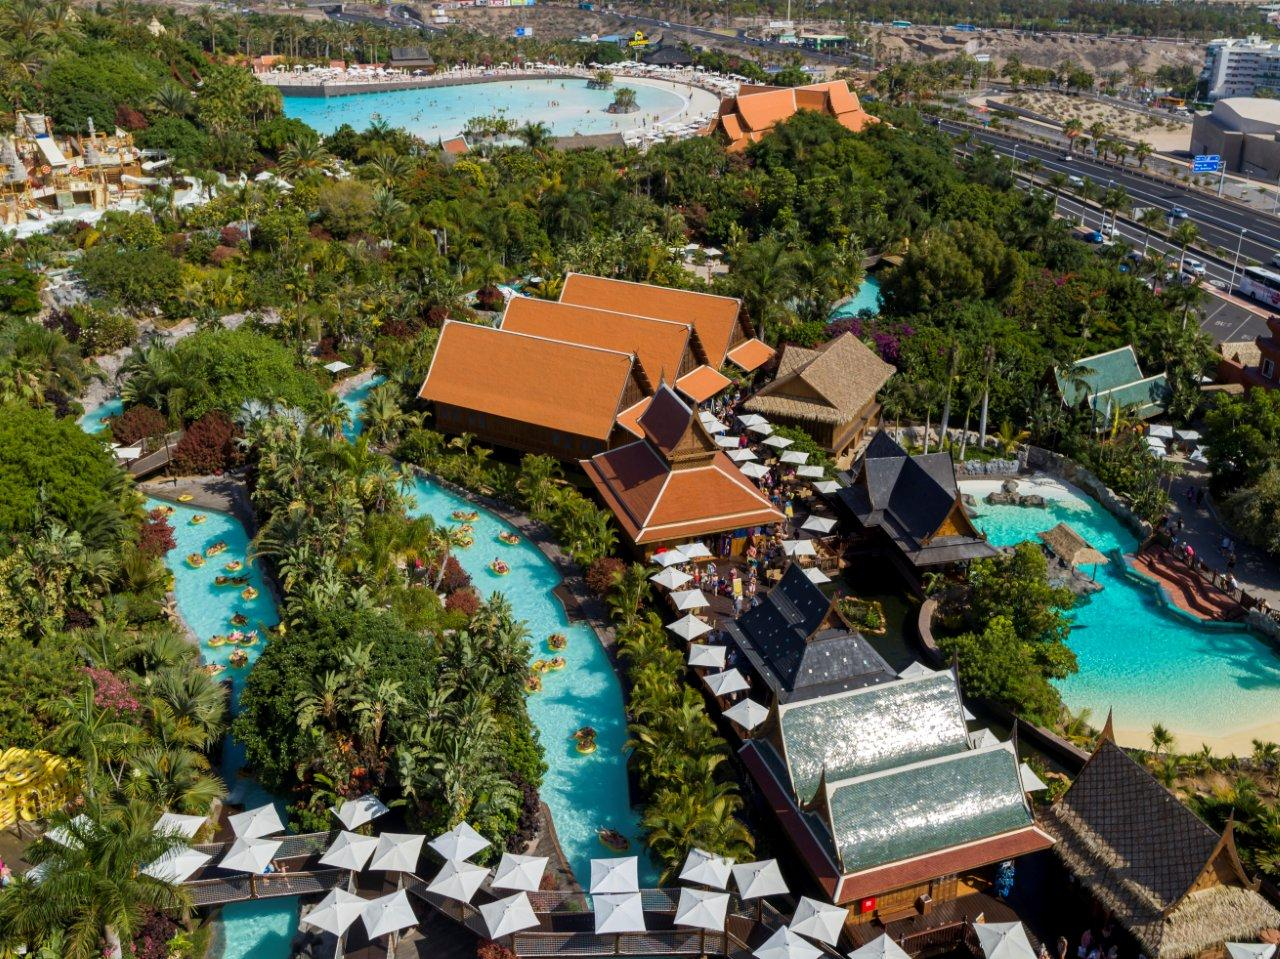 Siam Park remains unrivaled: Water Kingdom voted world's best water park for 7th time